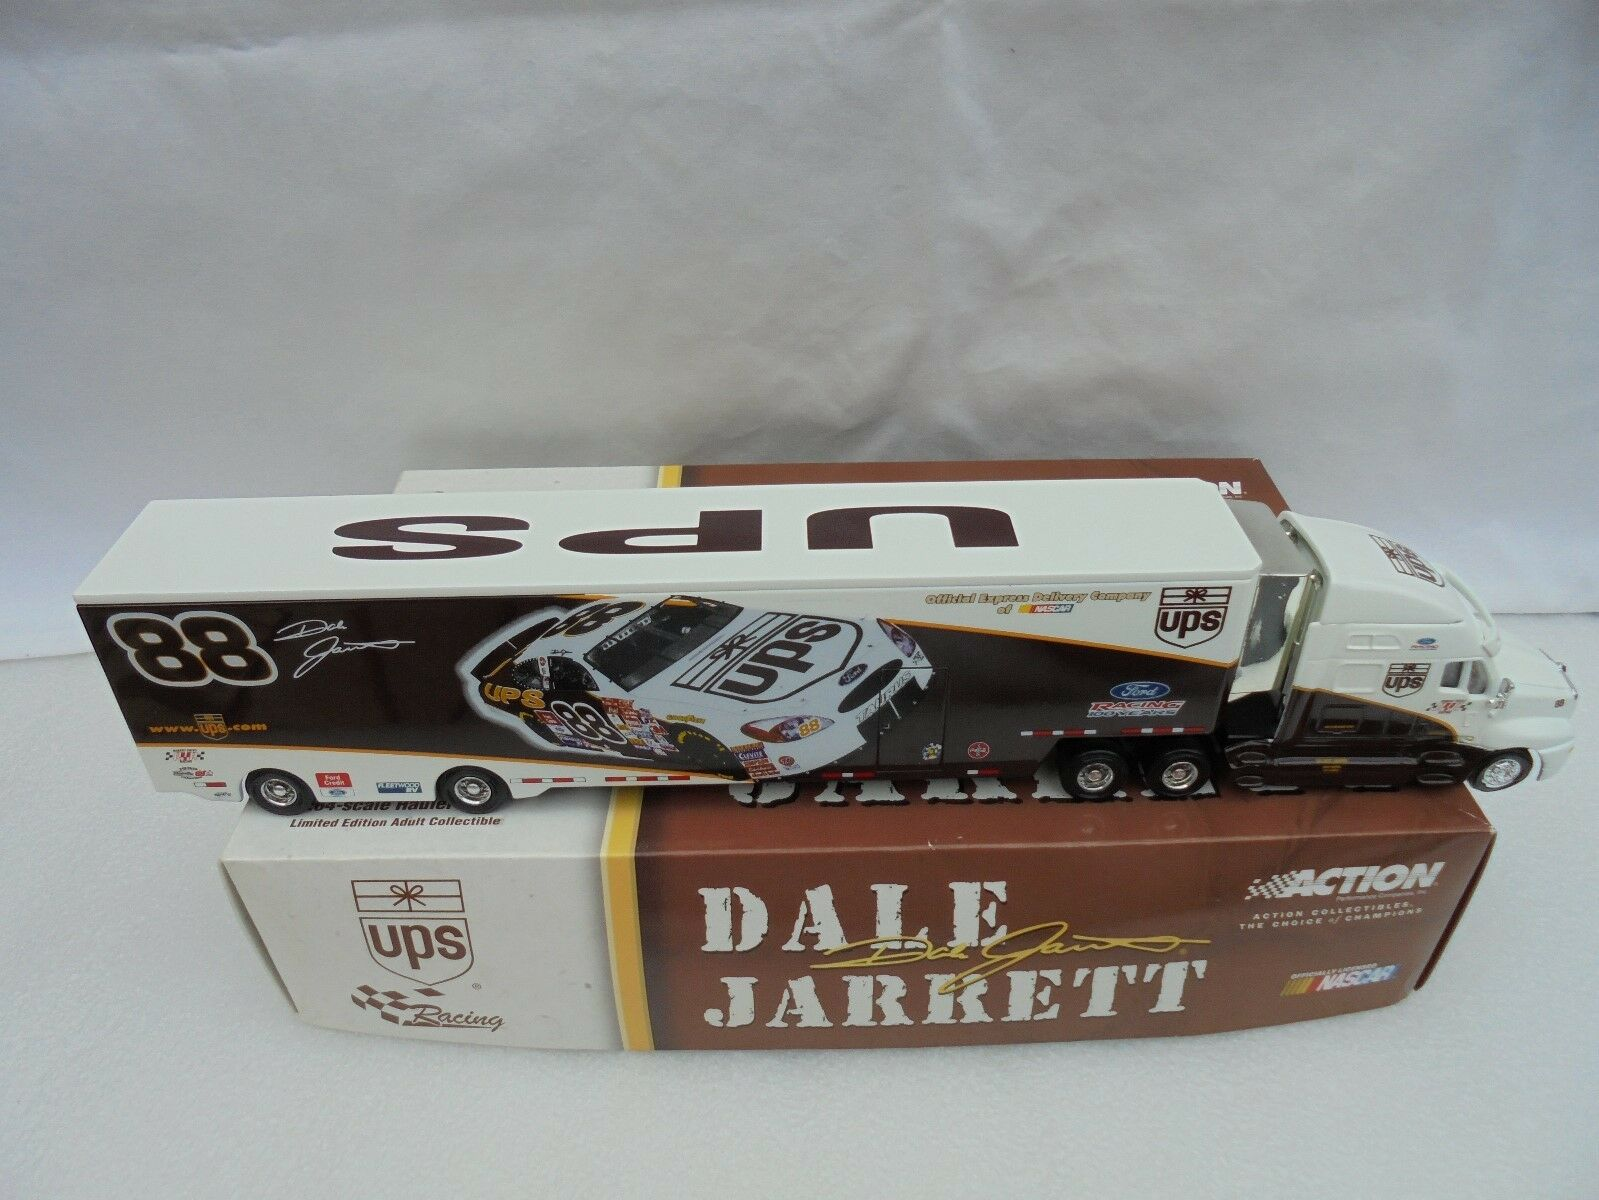 Dale Jarrett  88 UPS 2001 Hauler Action NASCAR Diecast Collectible échelle 1 64th